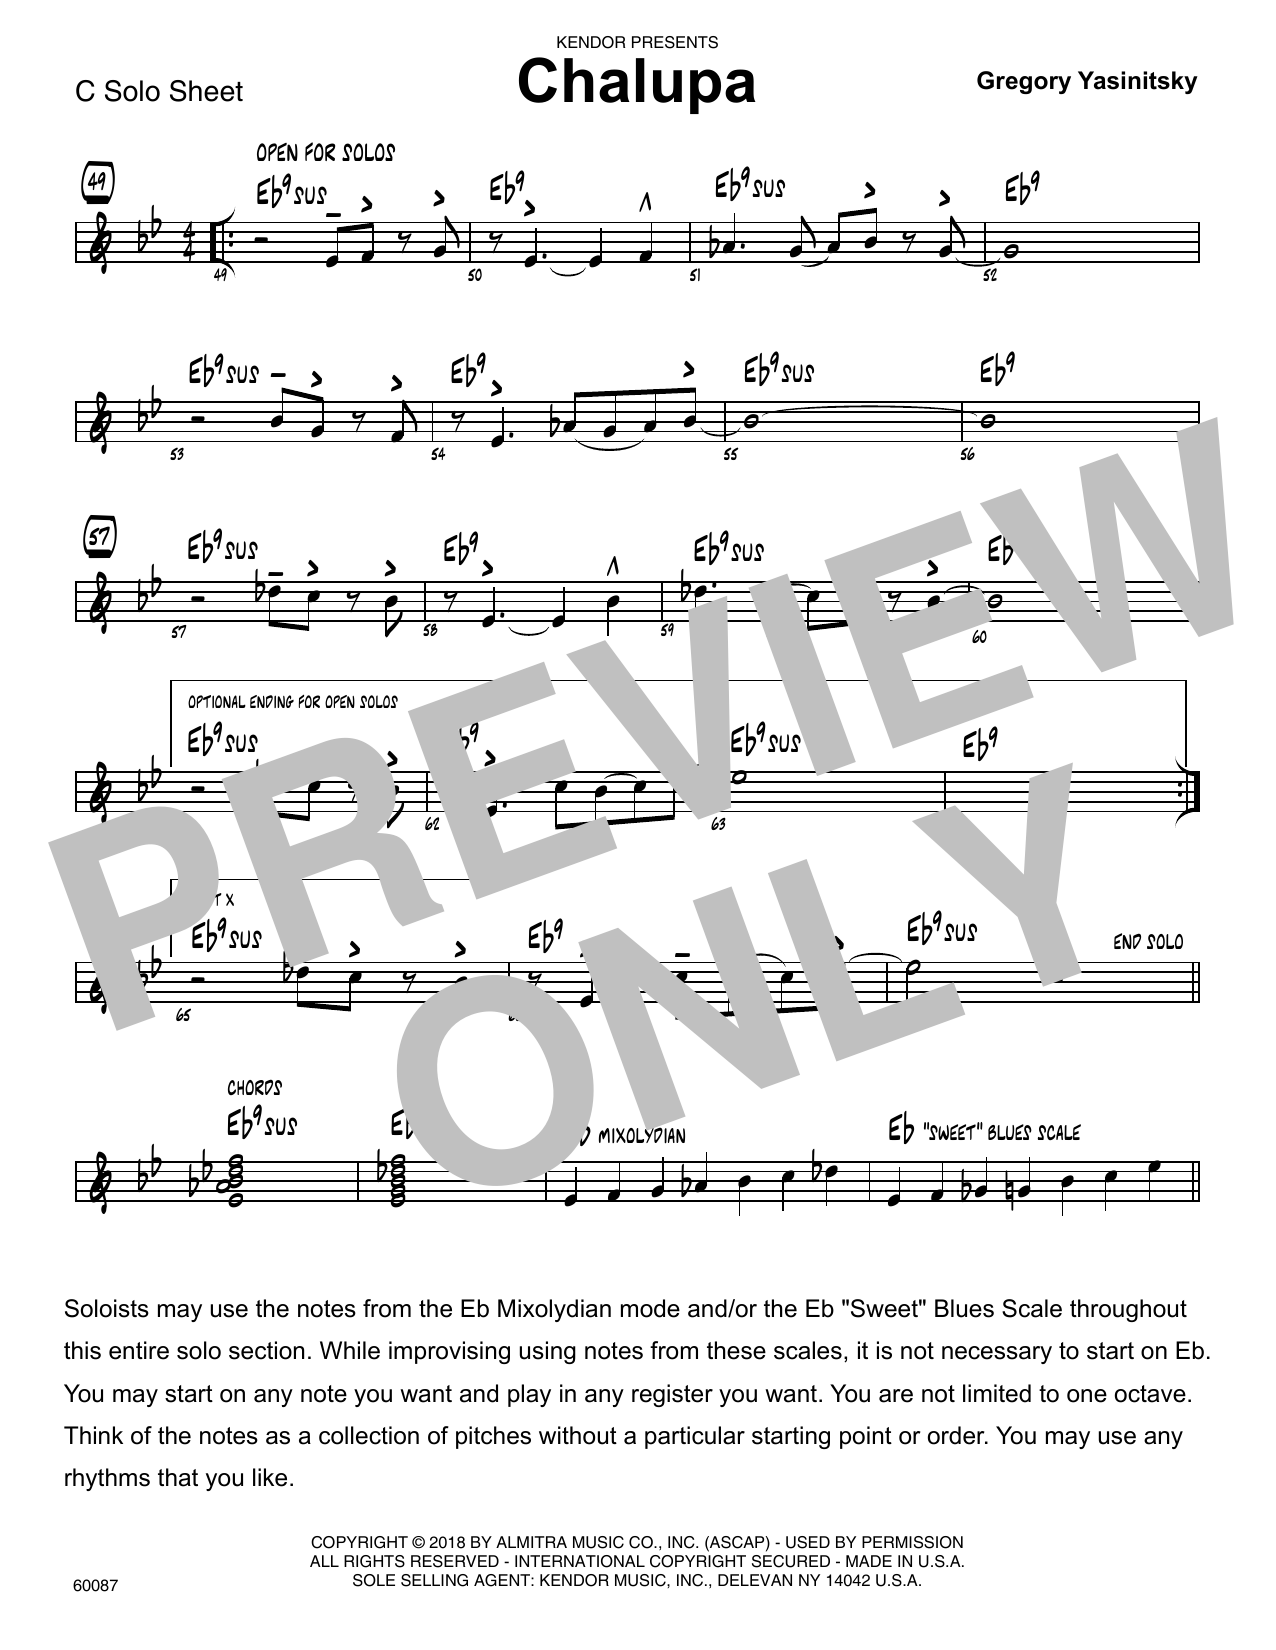 Gregory Yasinitsky Chalupa - C Solo Sheet sheet music preview music notes and score for Jazz Ensemble including 1 page(s)